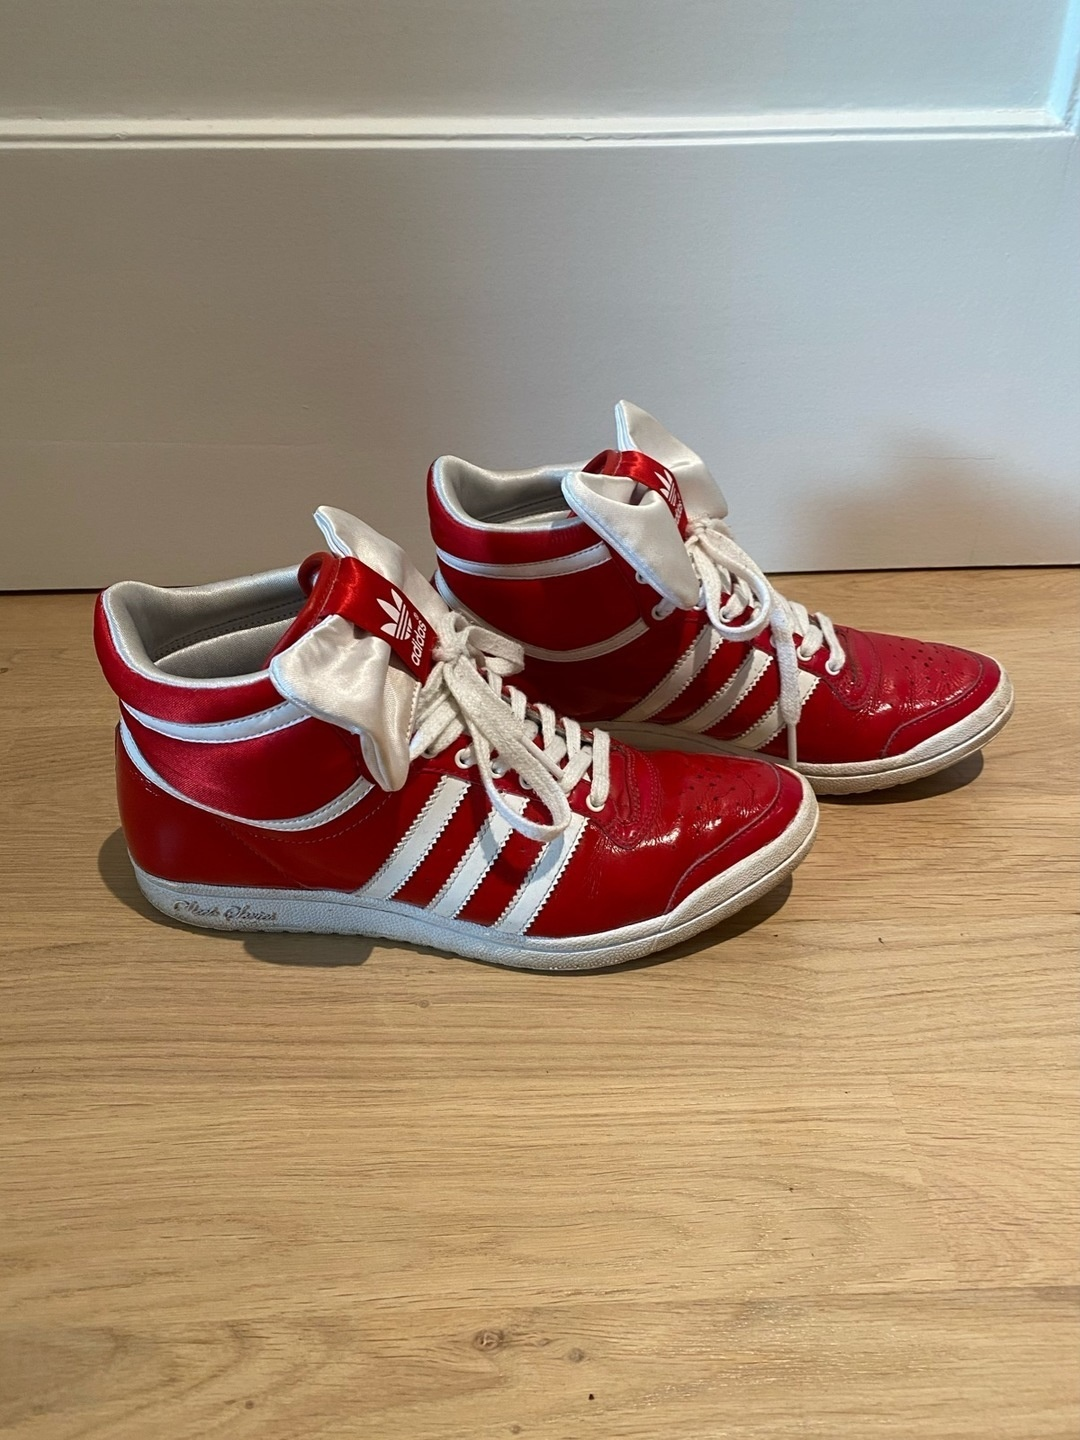 Naiset tennarit - ADIDAS photo 2